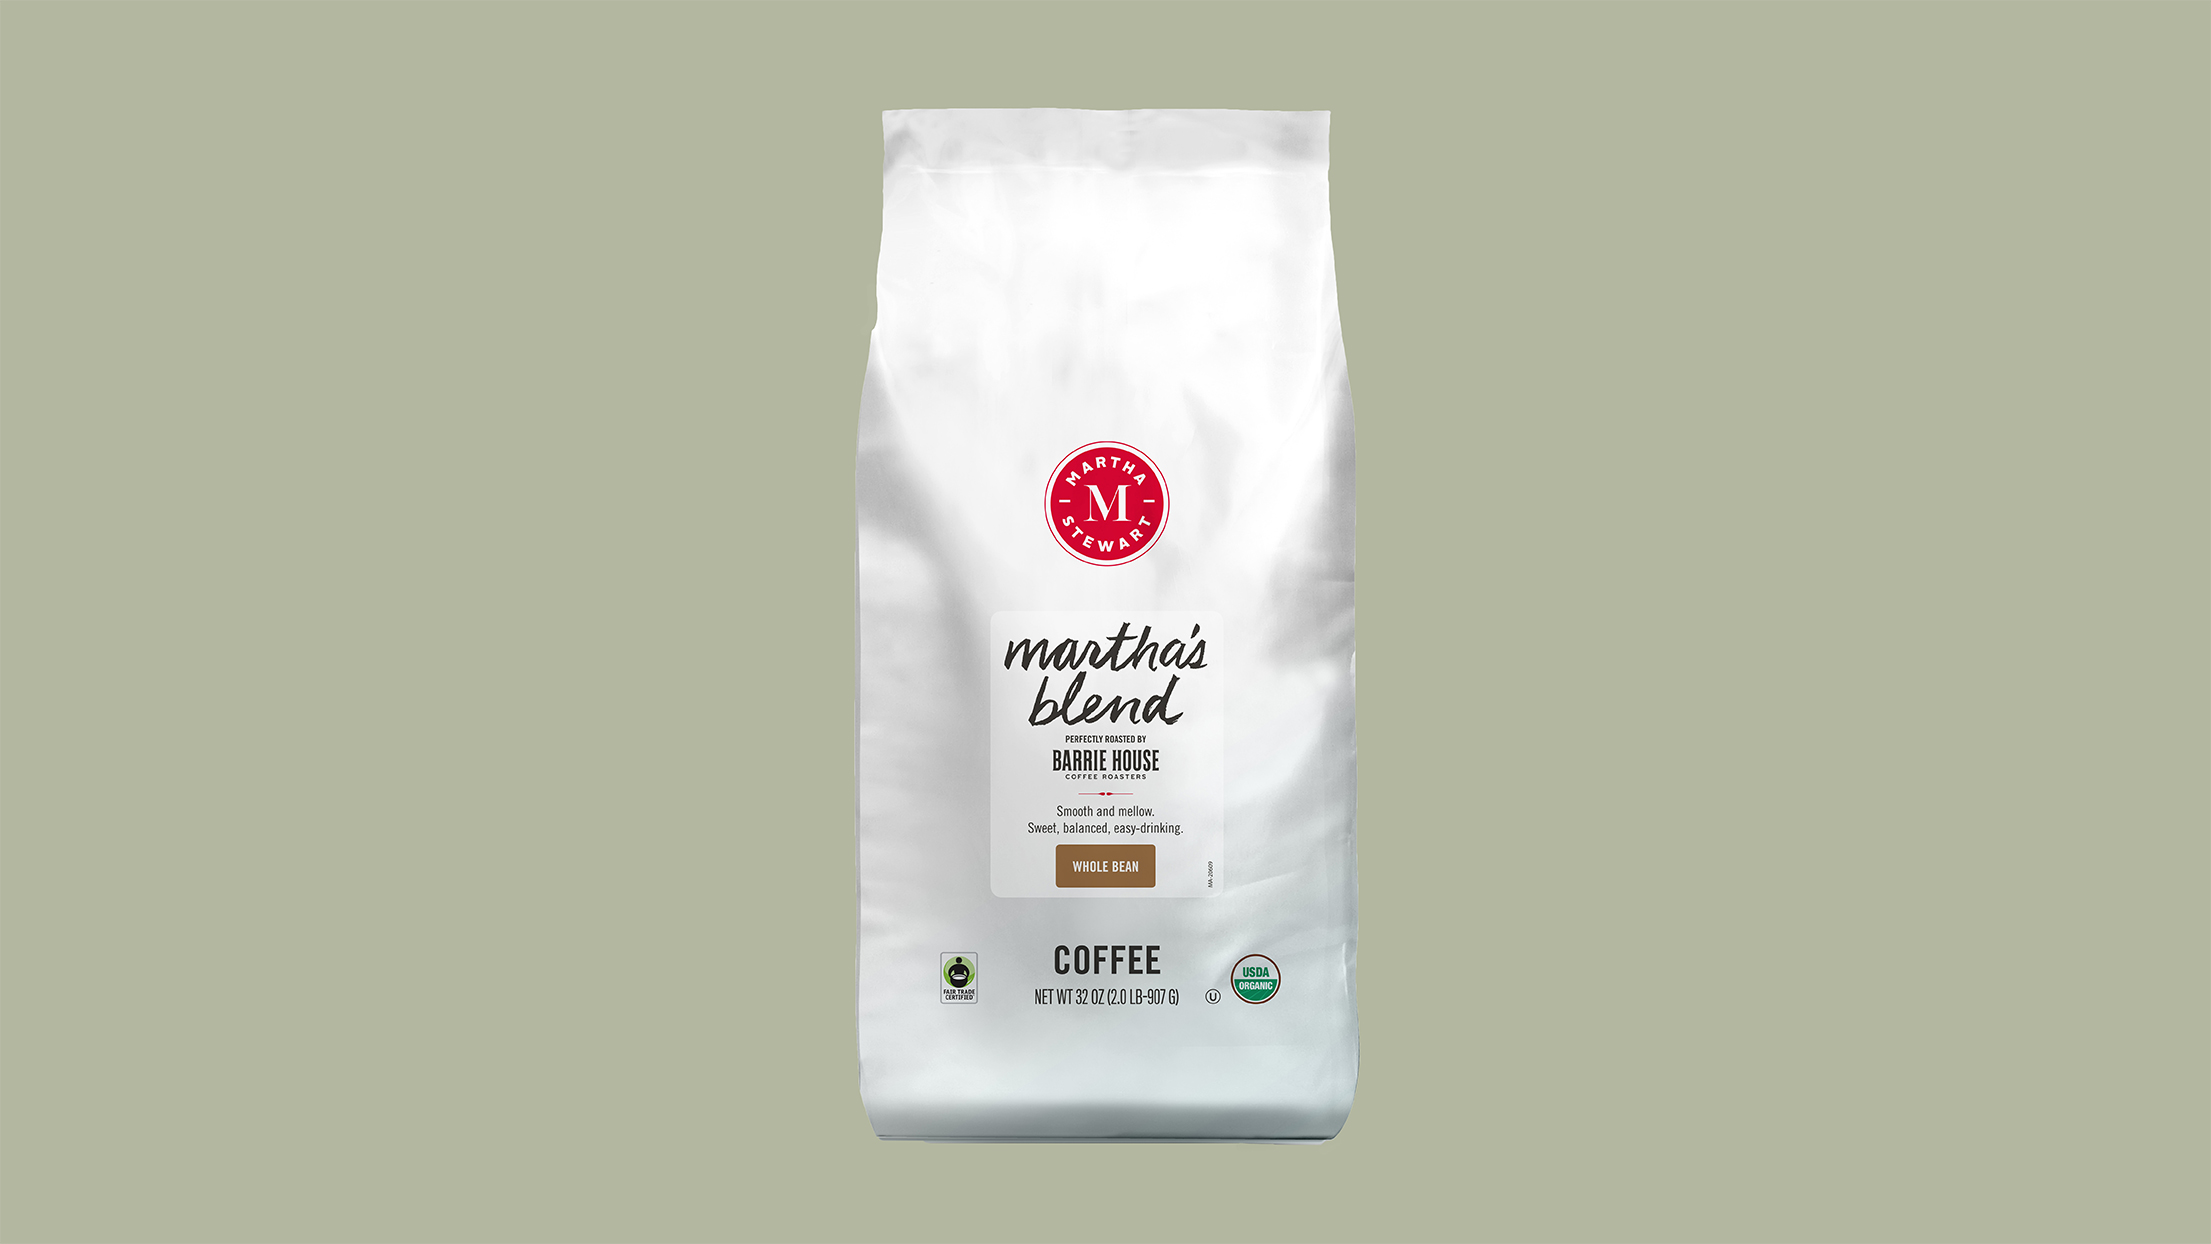 marthas blend of barrie house coffee